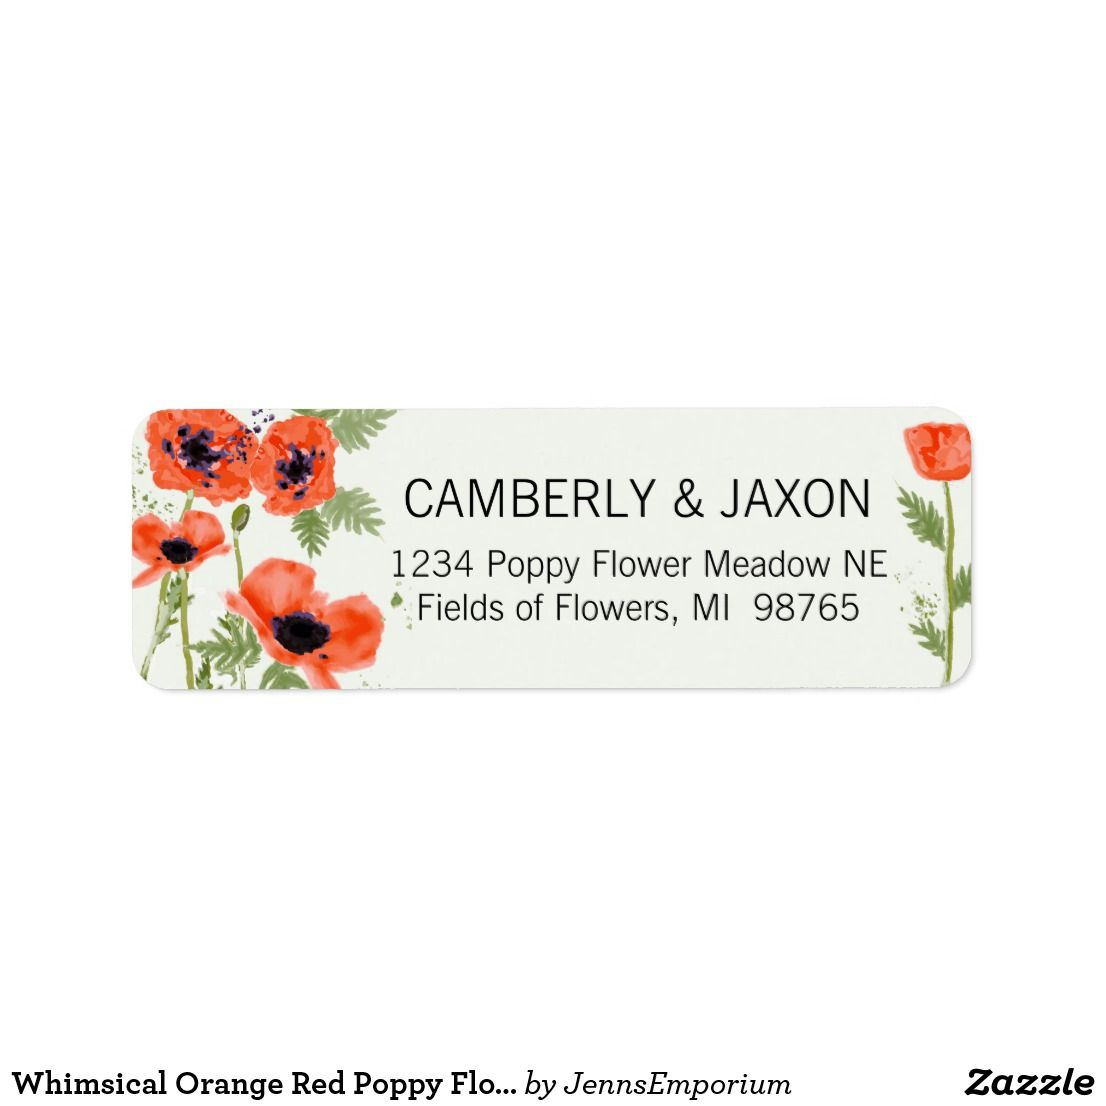 Whimsical Orange Red Poppy Flowers Watercolor Label Zazzle Com